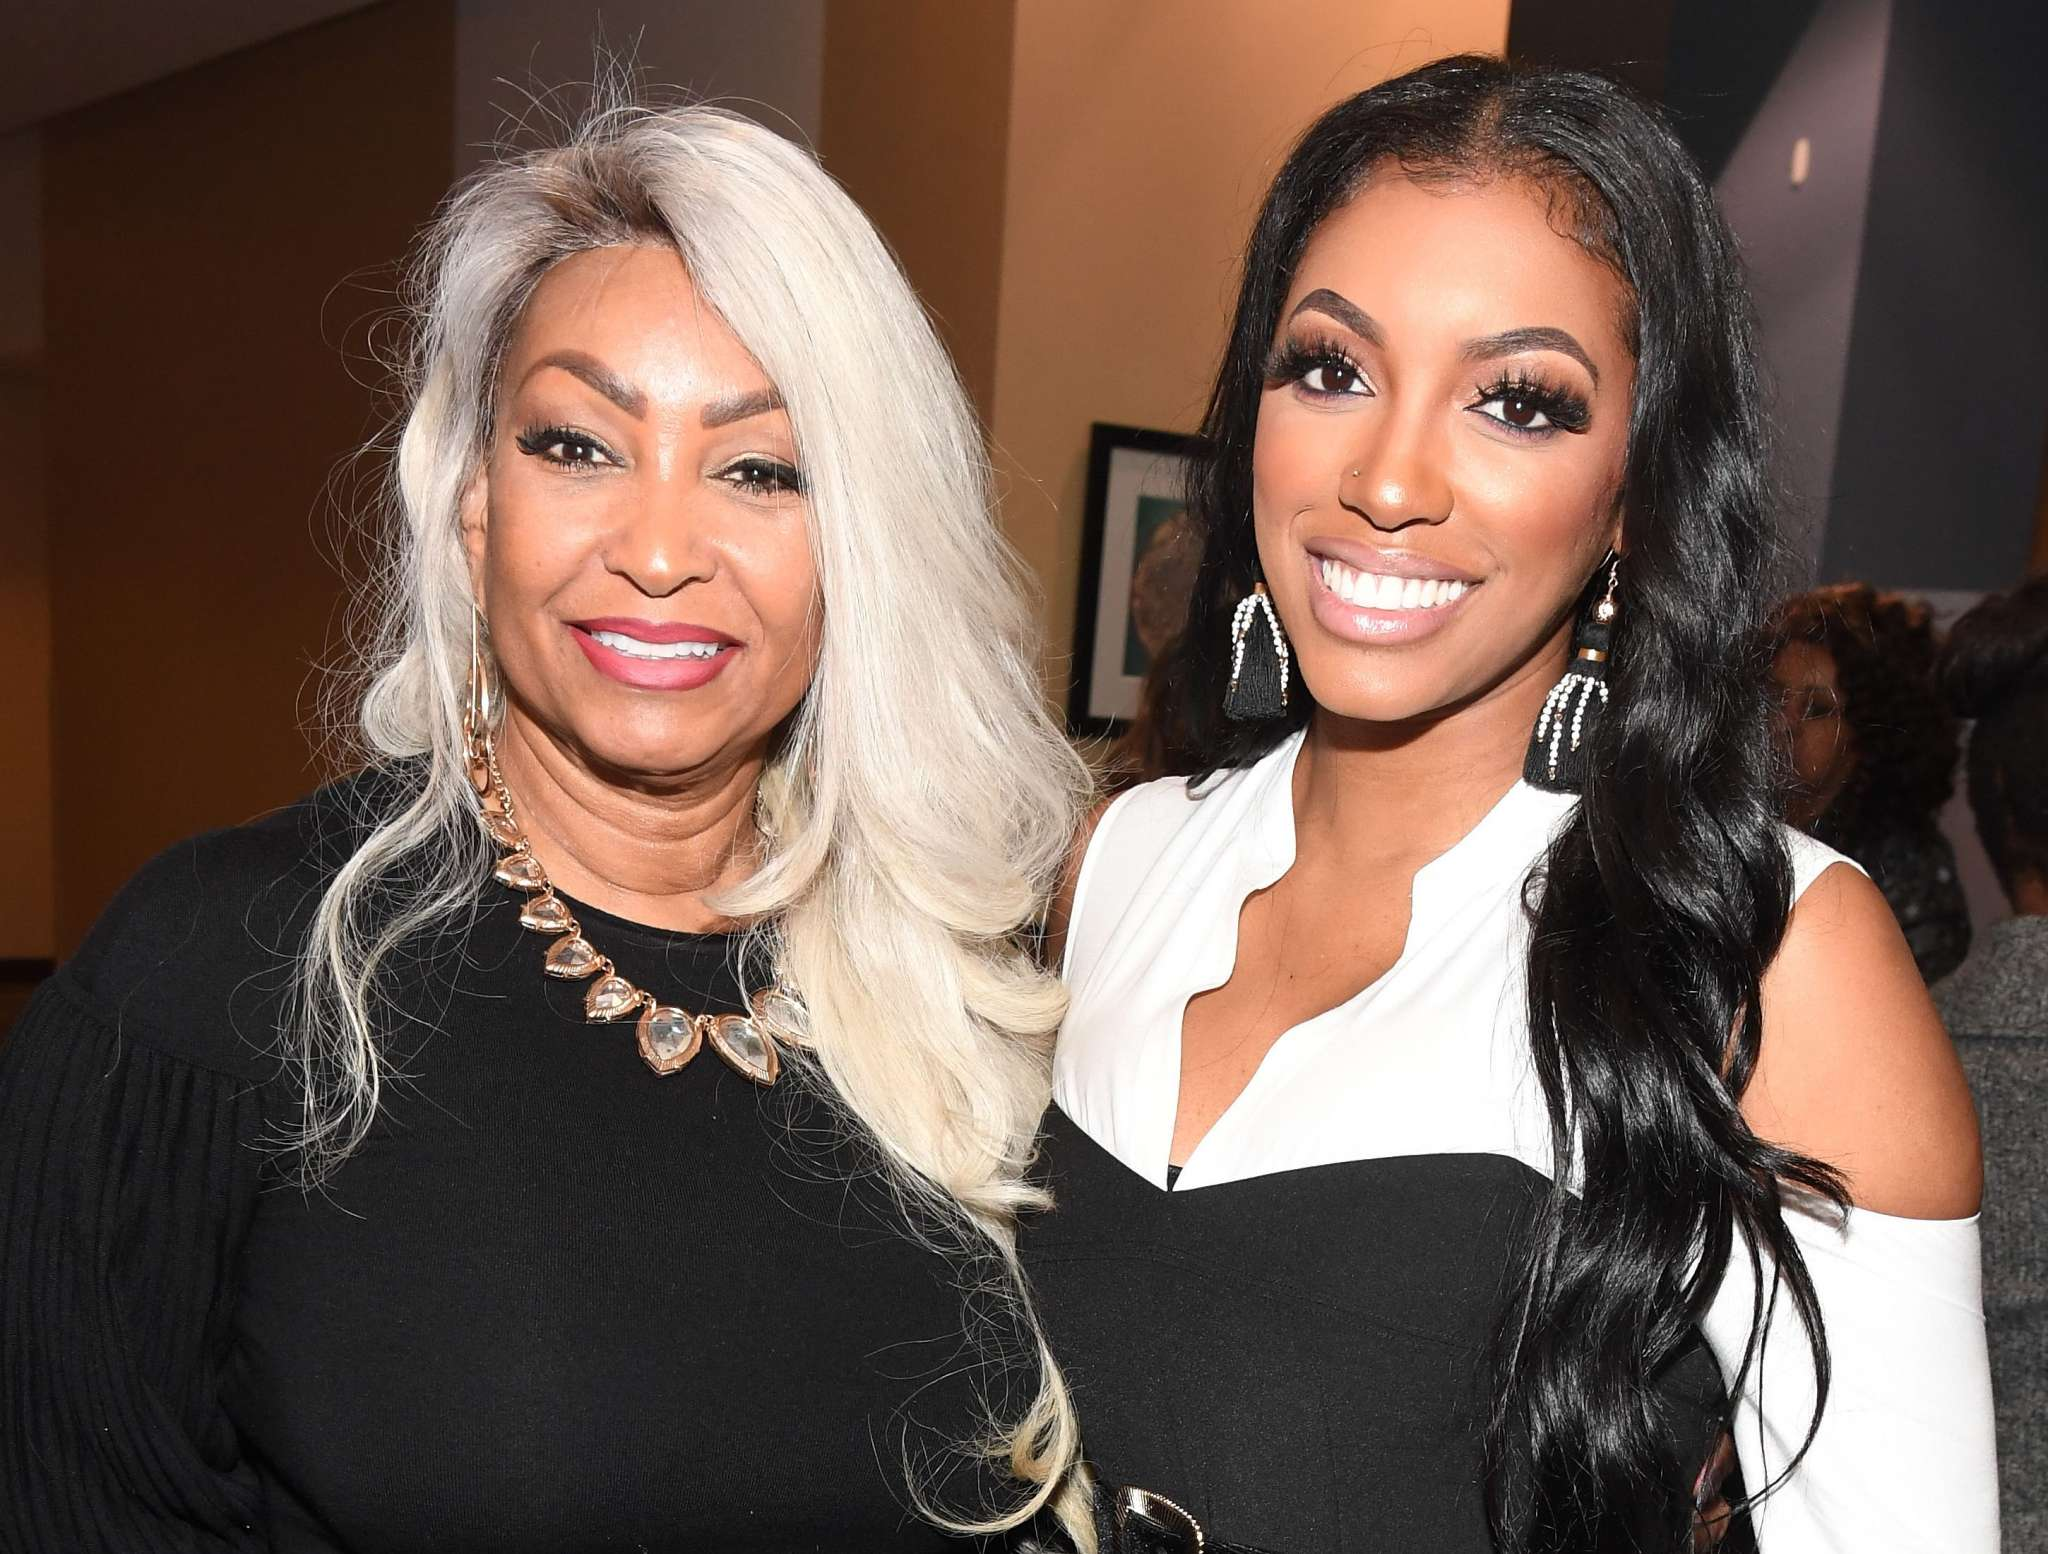 PorshaWilliams' Video With Her Mom Dancing To Beyonce Has Fans Crazy With Excitement - Check Out Diane's Sensual Moves